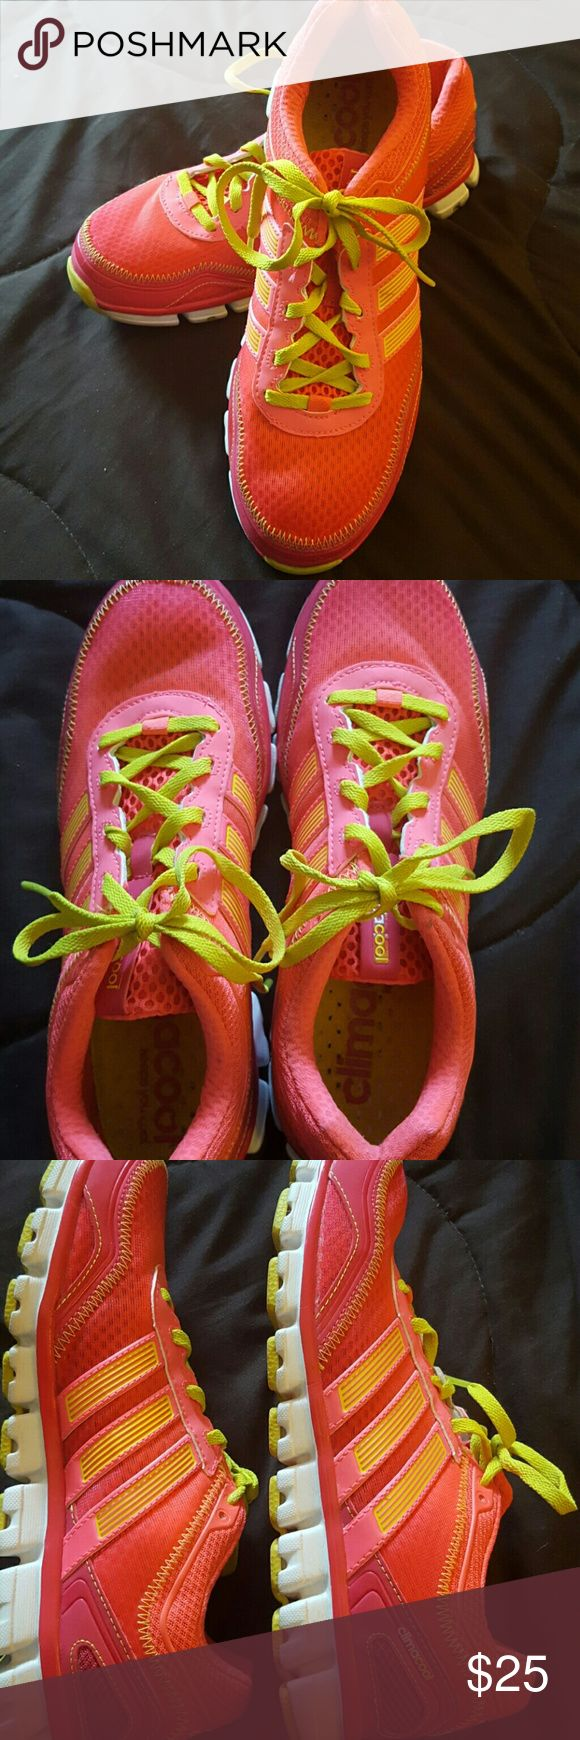 Climate cool Neon running  sneakers Climate cool Neon running sneakers Adidas Shoes Sneakers